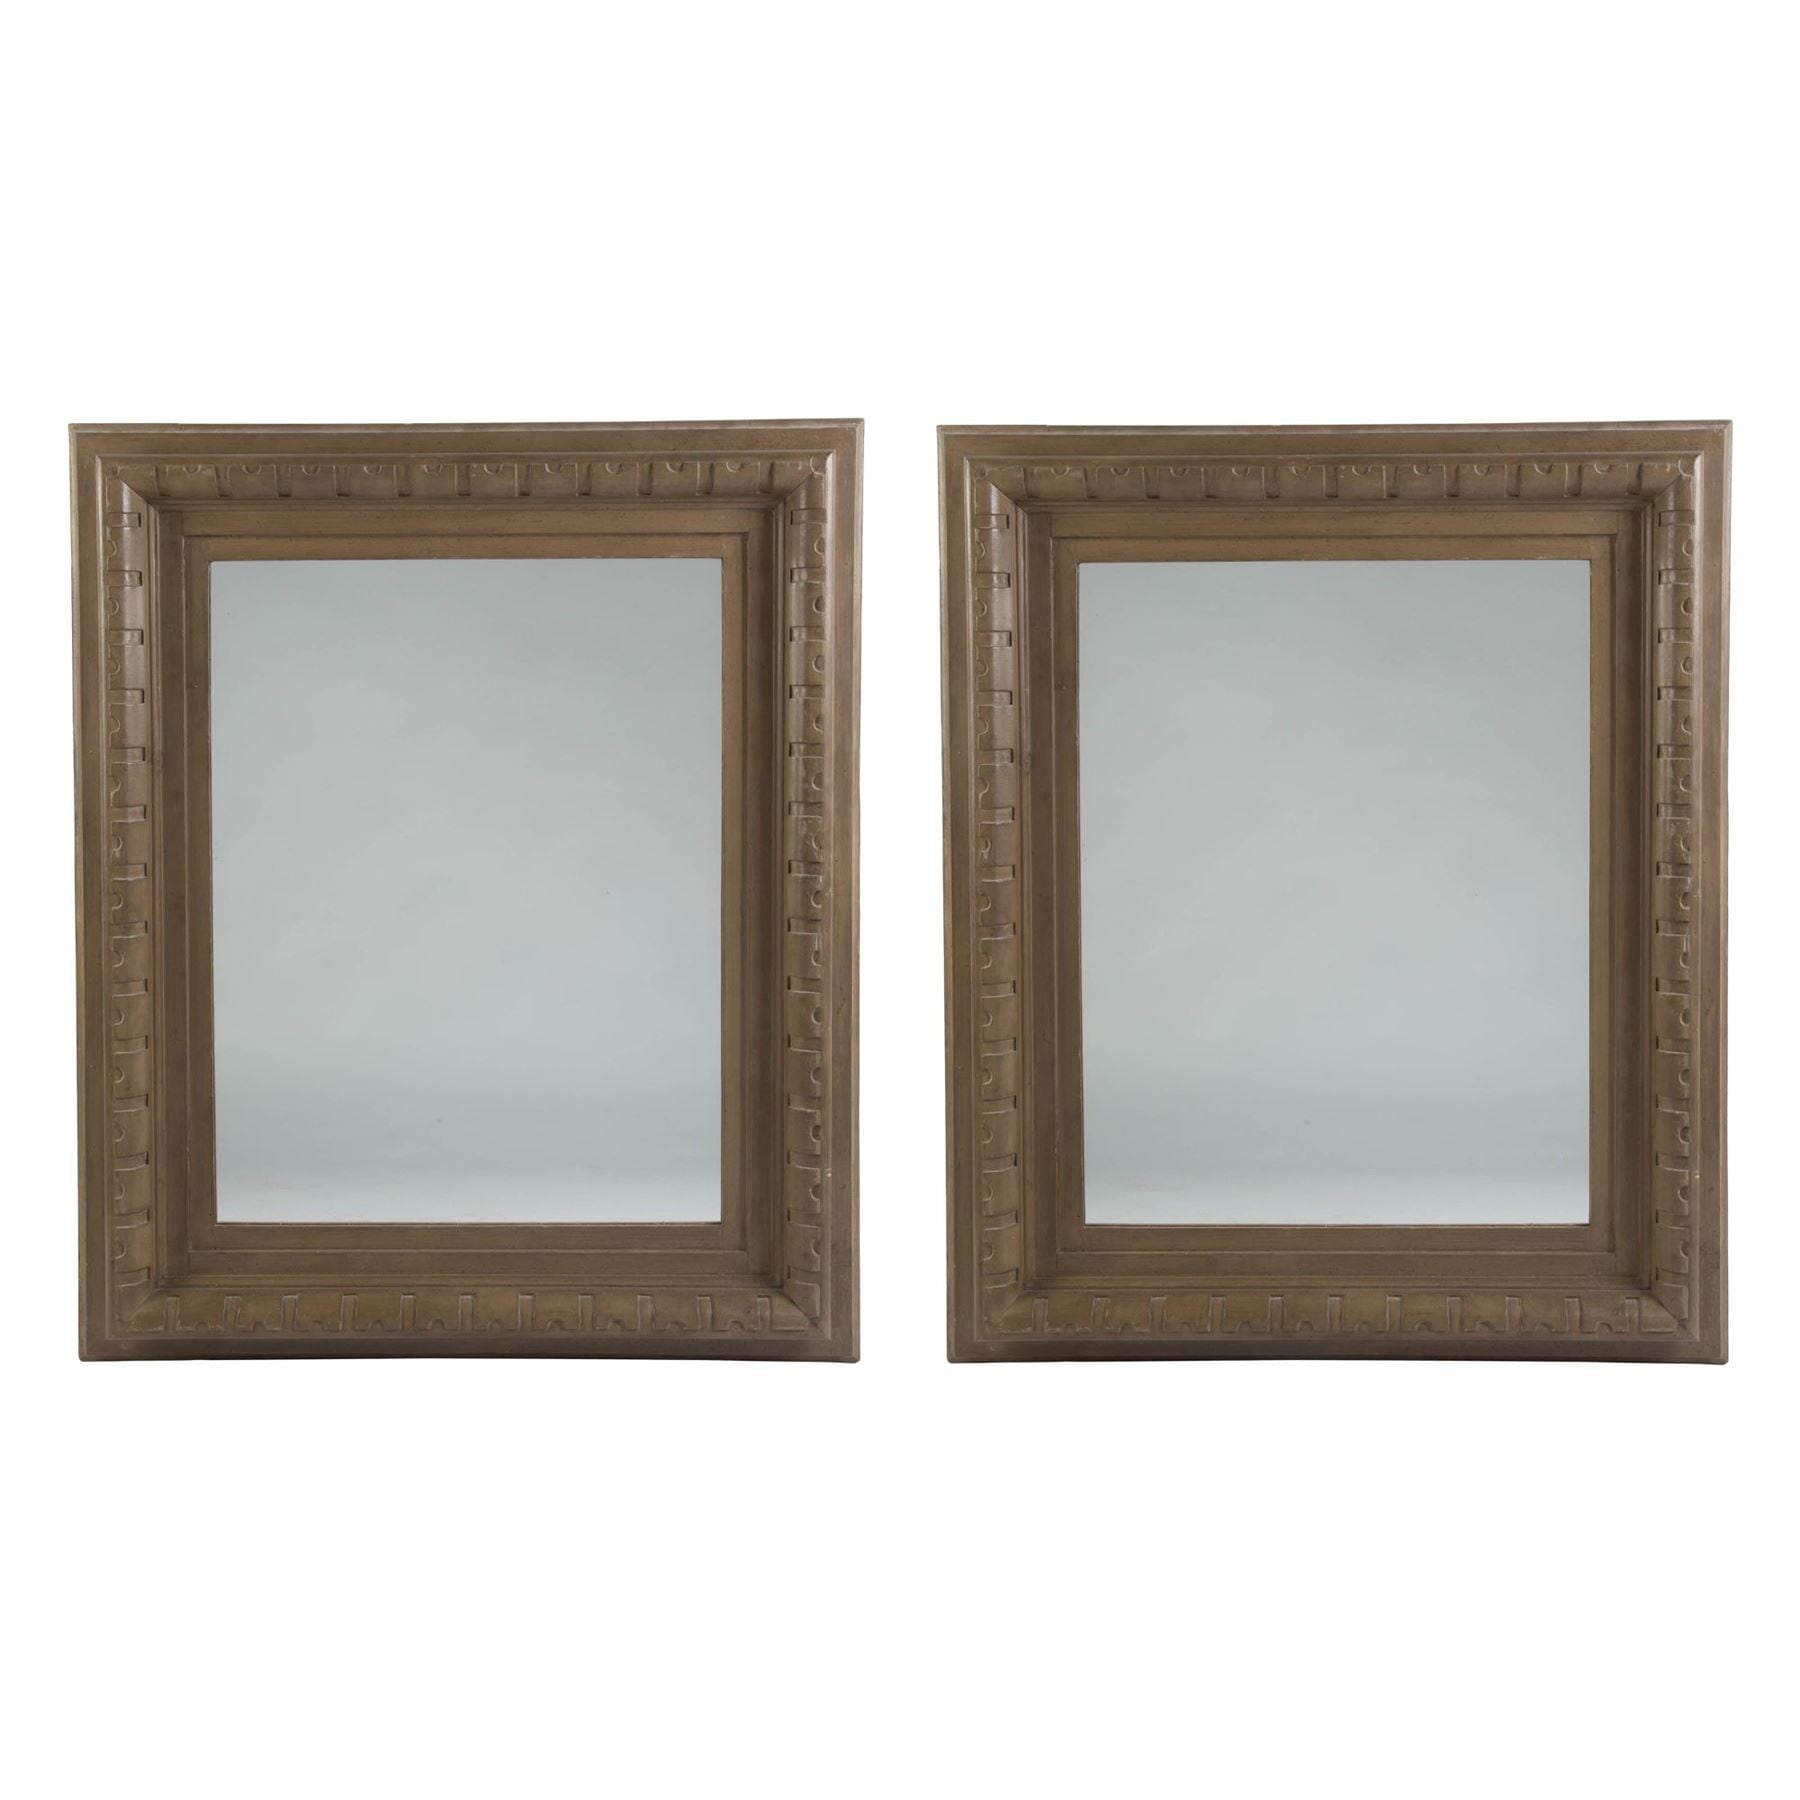 Pair Of Large Architectural Wooden Framed Mirrors